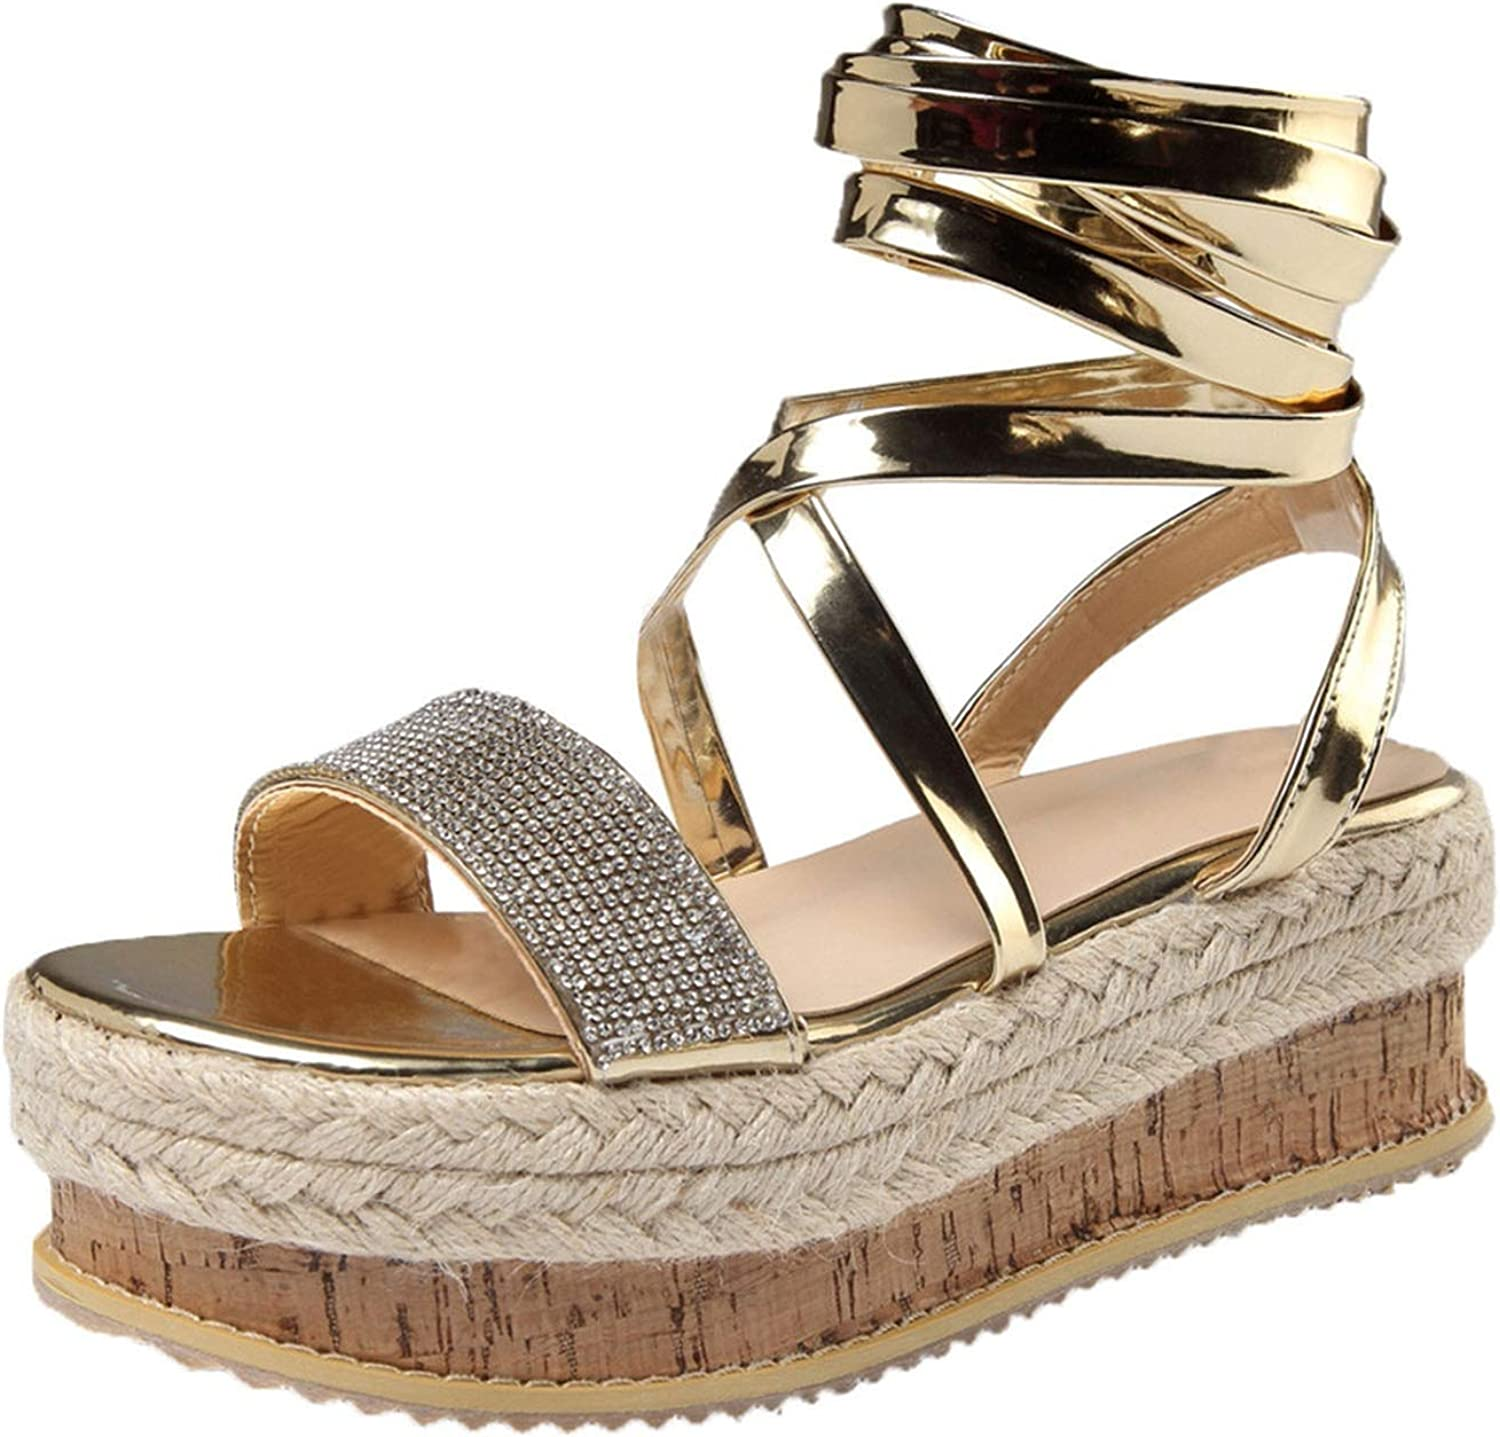 Gladiator Sandals Flat Rome Style Crystal Flat Playform Woven Sandals Roman shoes